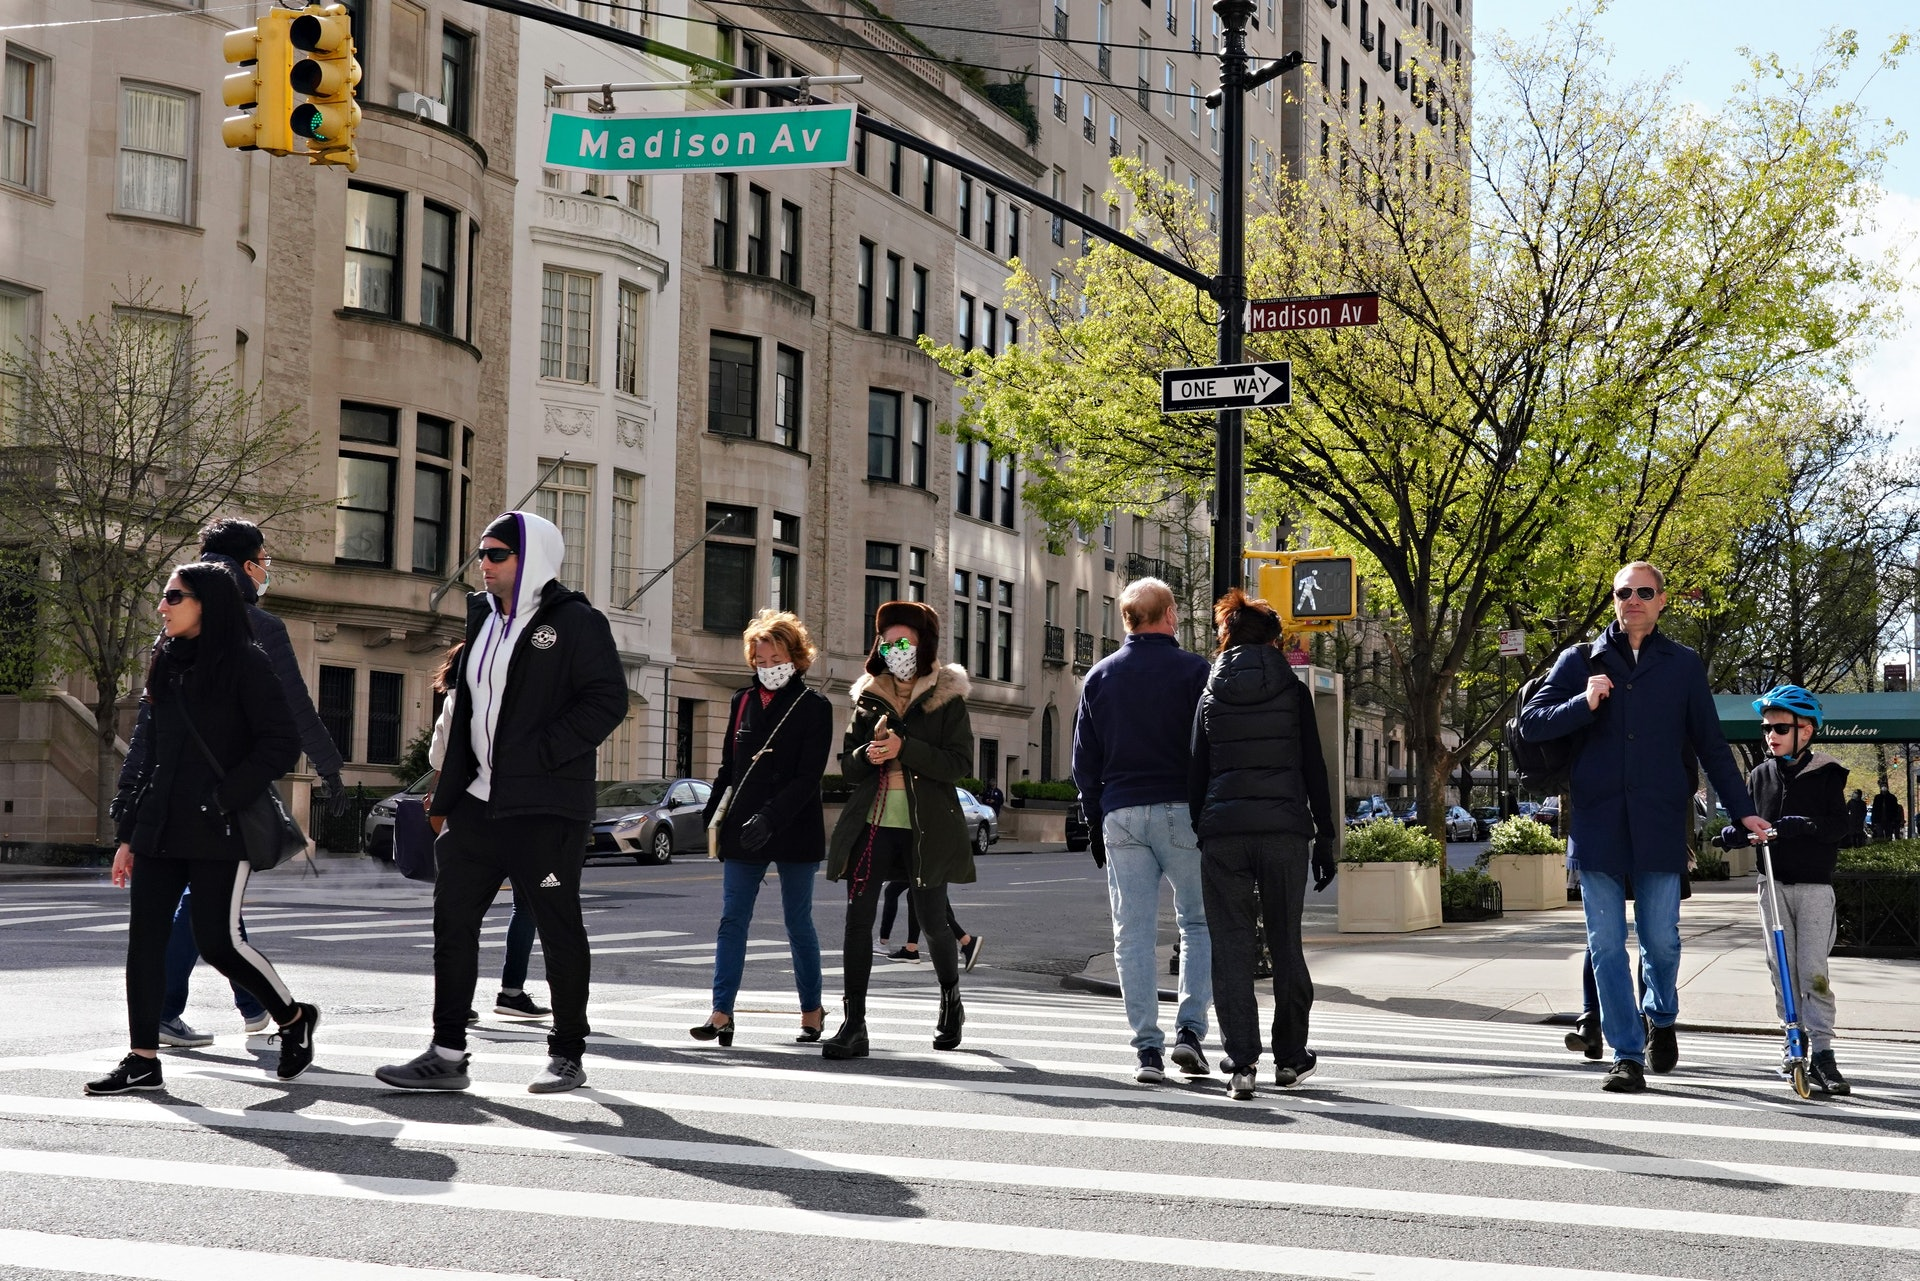 New Coronary Pneumonia: New Coronary Pneumonia antibody test can help the authorities identify the number of infected people.  The picture shows one of the streets of New York on April 11th. Some passers-by still choose not to wear masks.  (Getty)